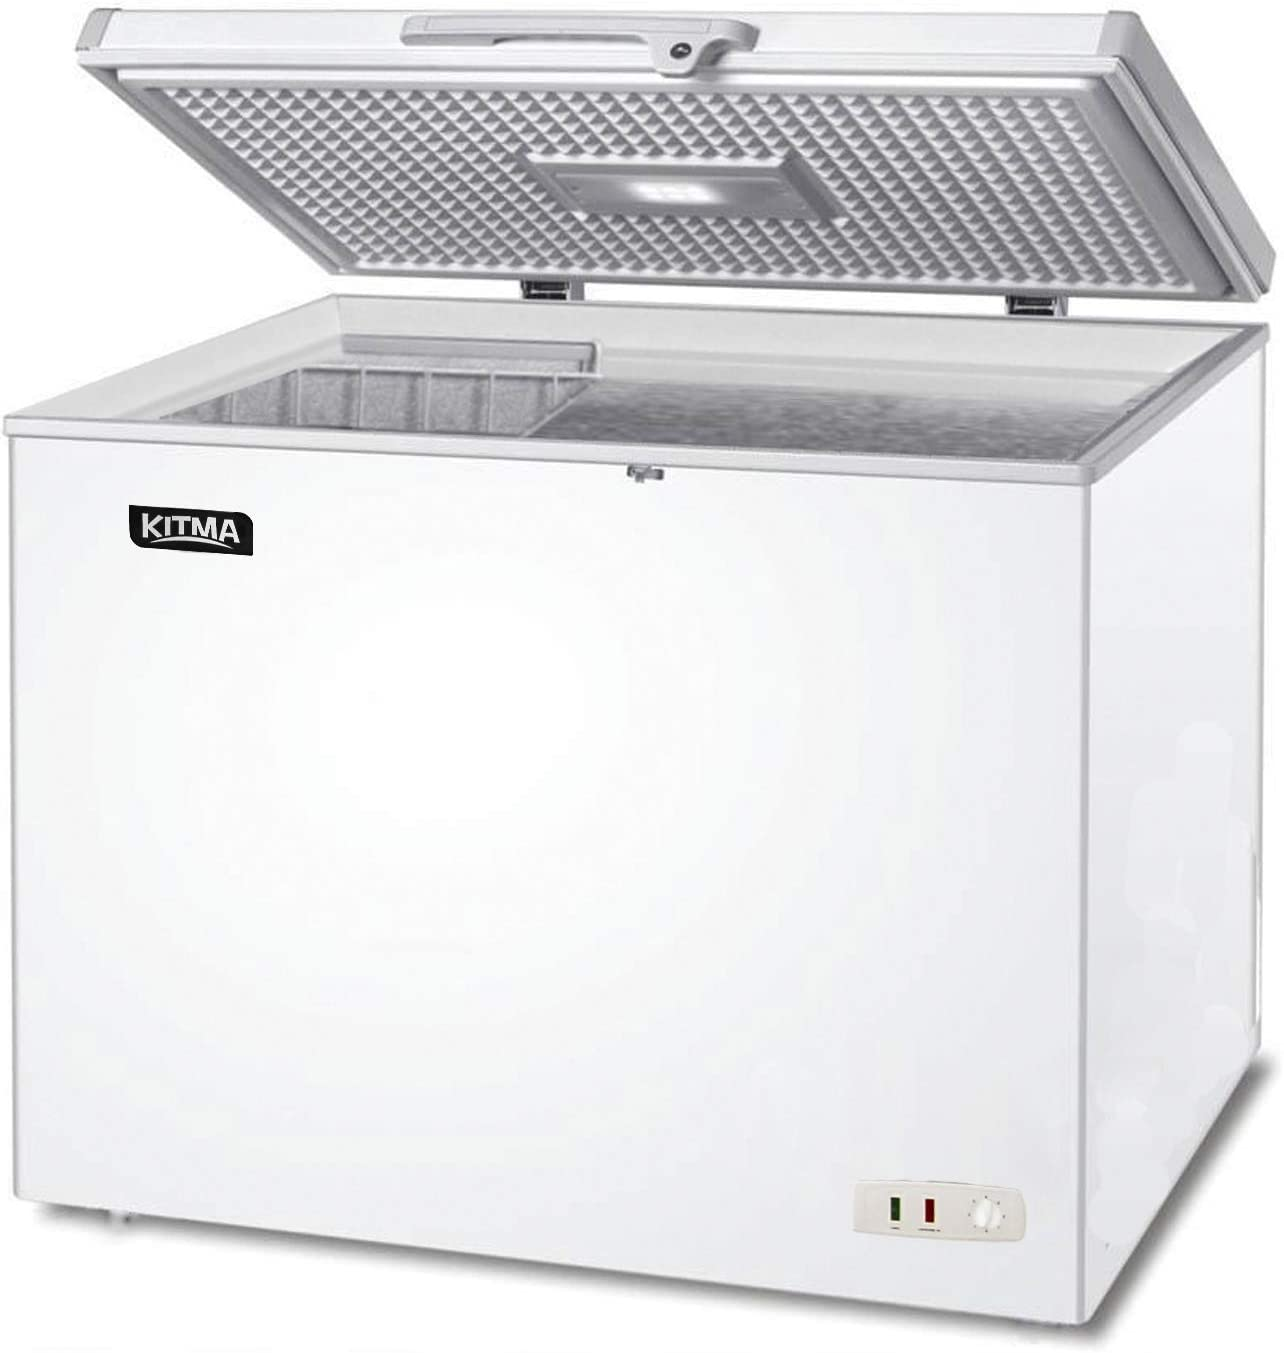 Amazon Com Commercial Top Chest Freezer Kitma 9 6 Cu Ft Deep Ice Cream Freezer With Adjustable Thermostat Compact Refrigerator White Appliances